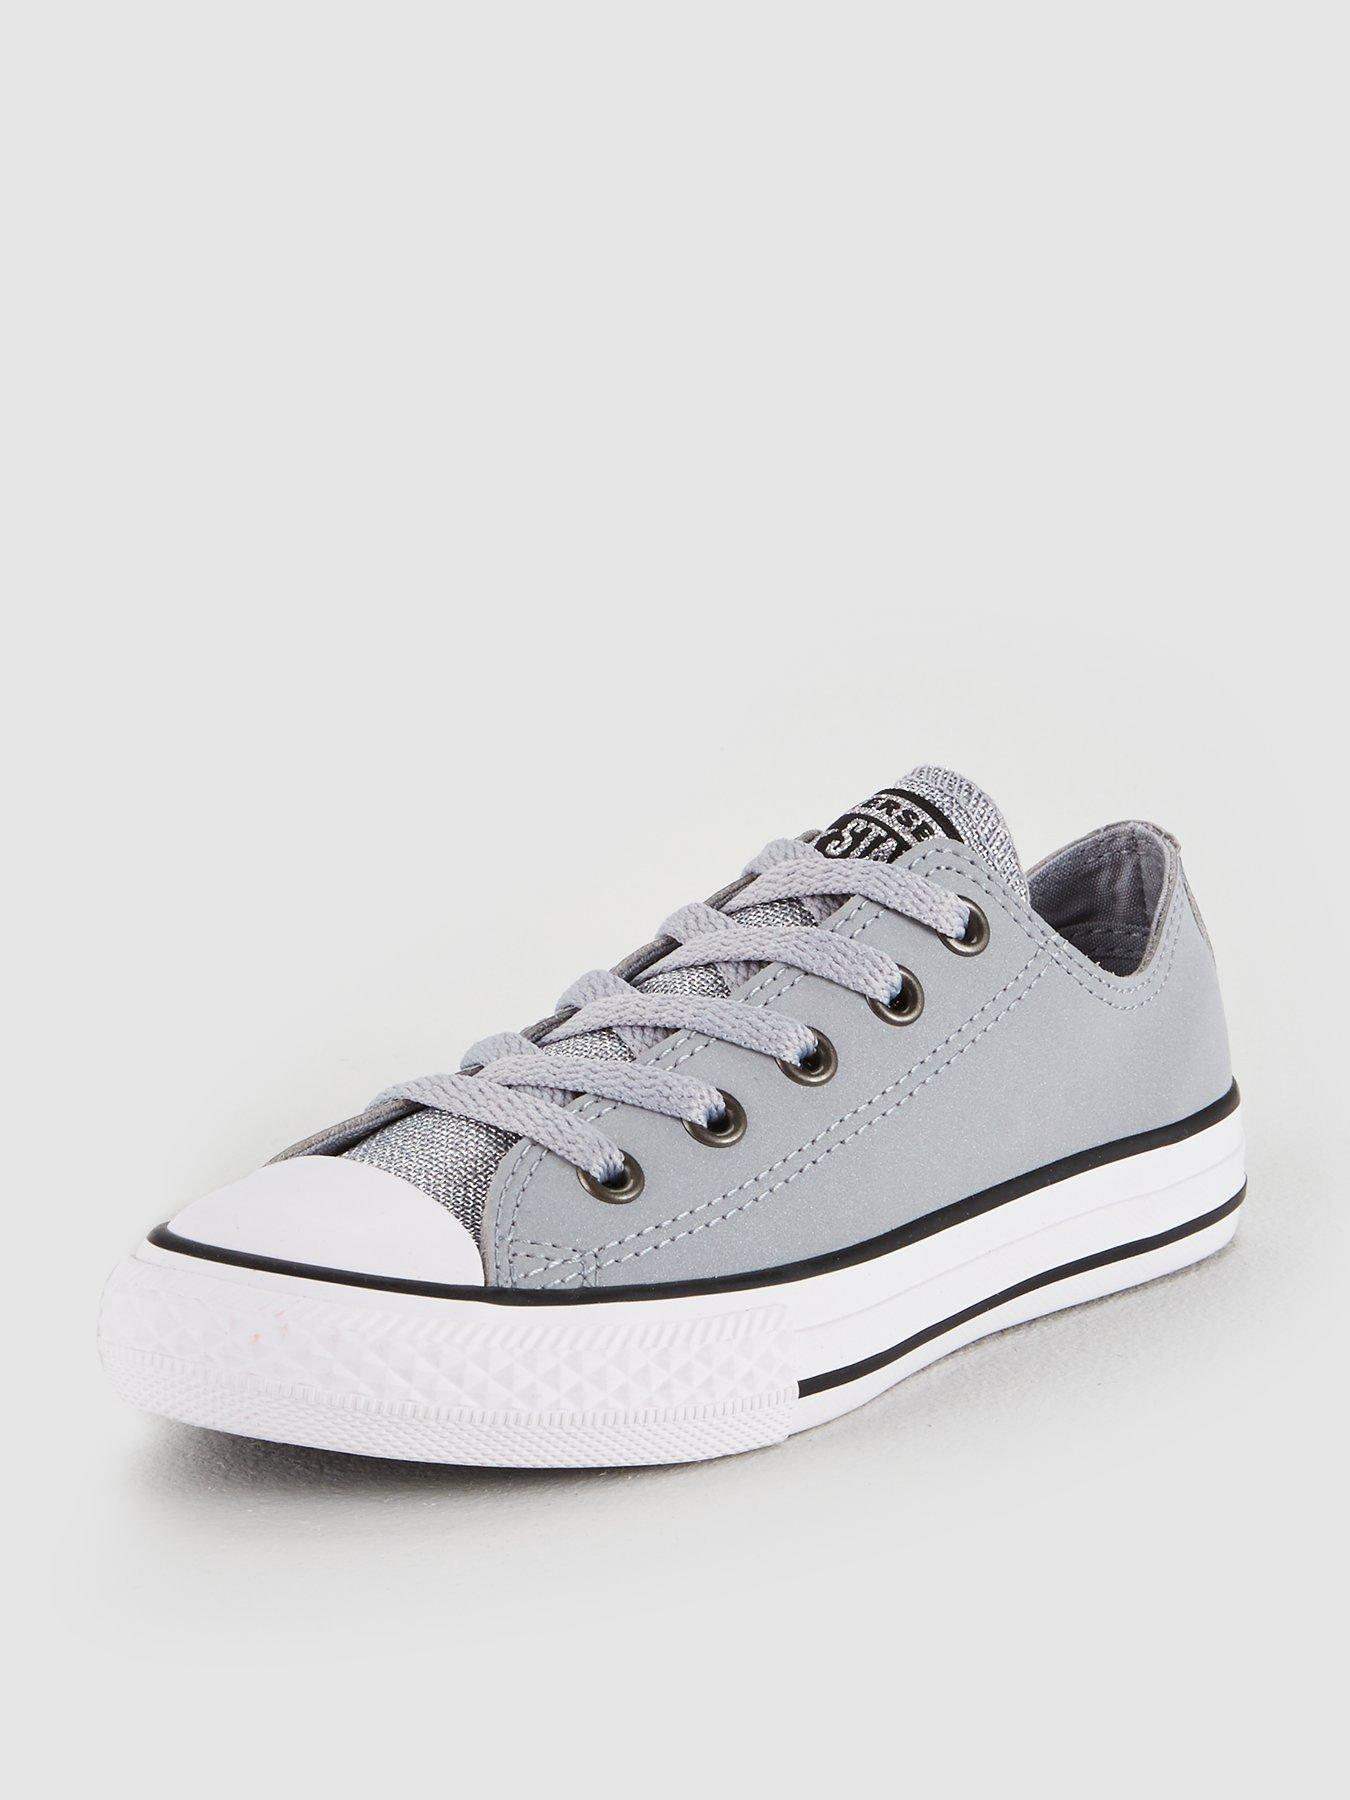 5 | Converse Chuck Taylor All Star Ox | Trainers | Child